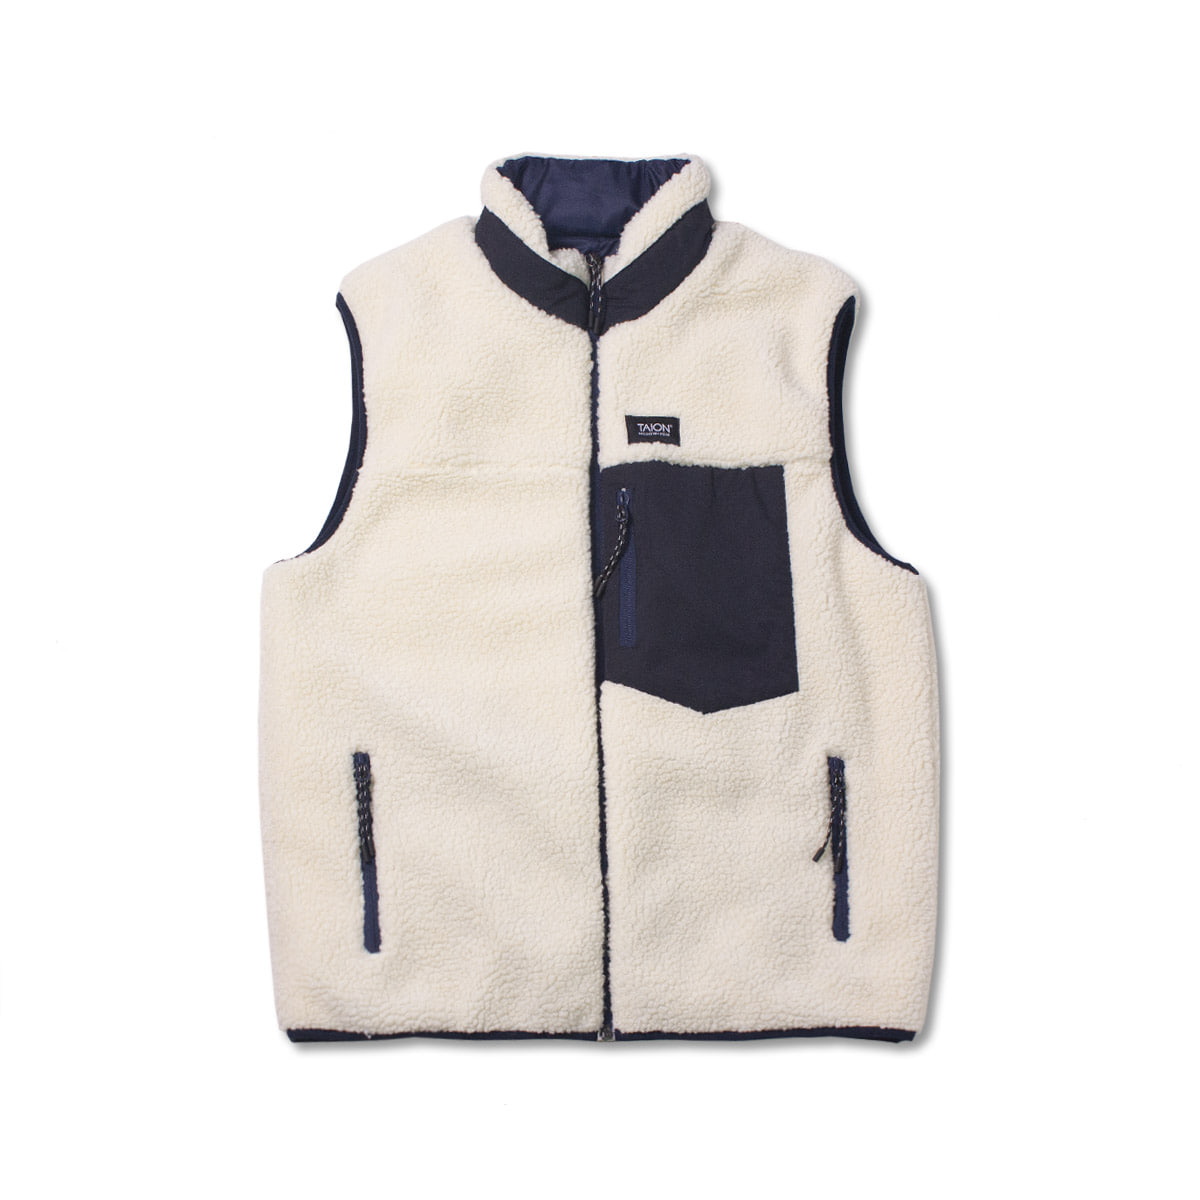 [TAION]  DOWN X BOA REVERSIBLE DOWN VEST (TAION-R002MB) 'NAVY'